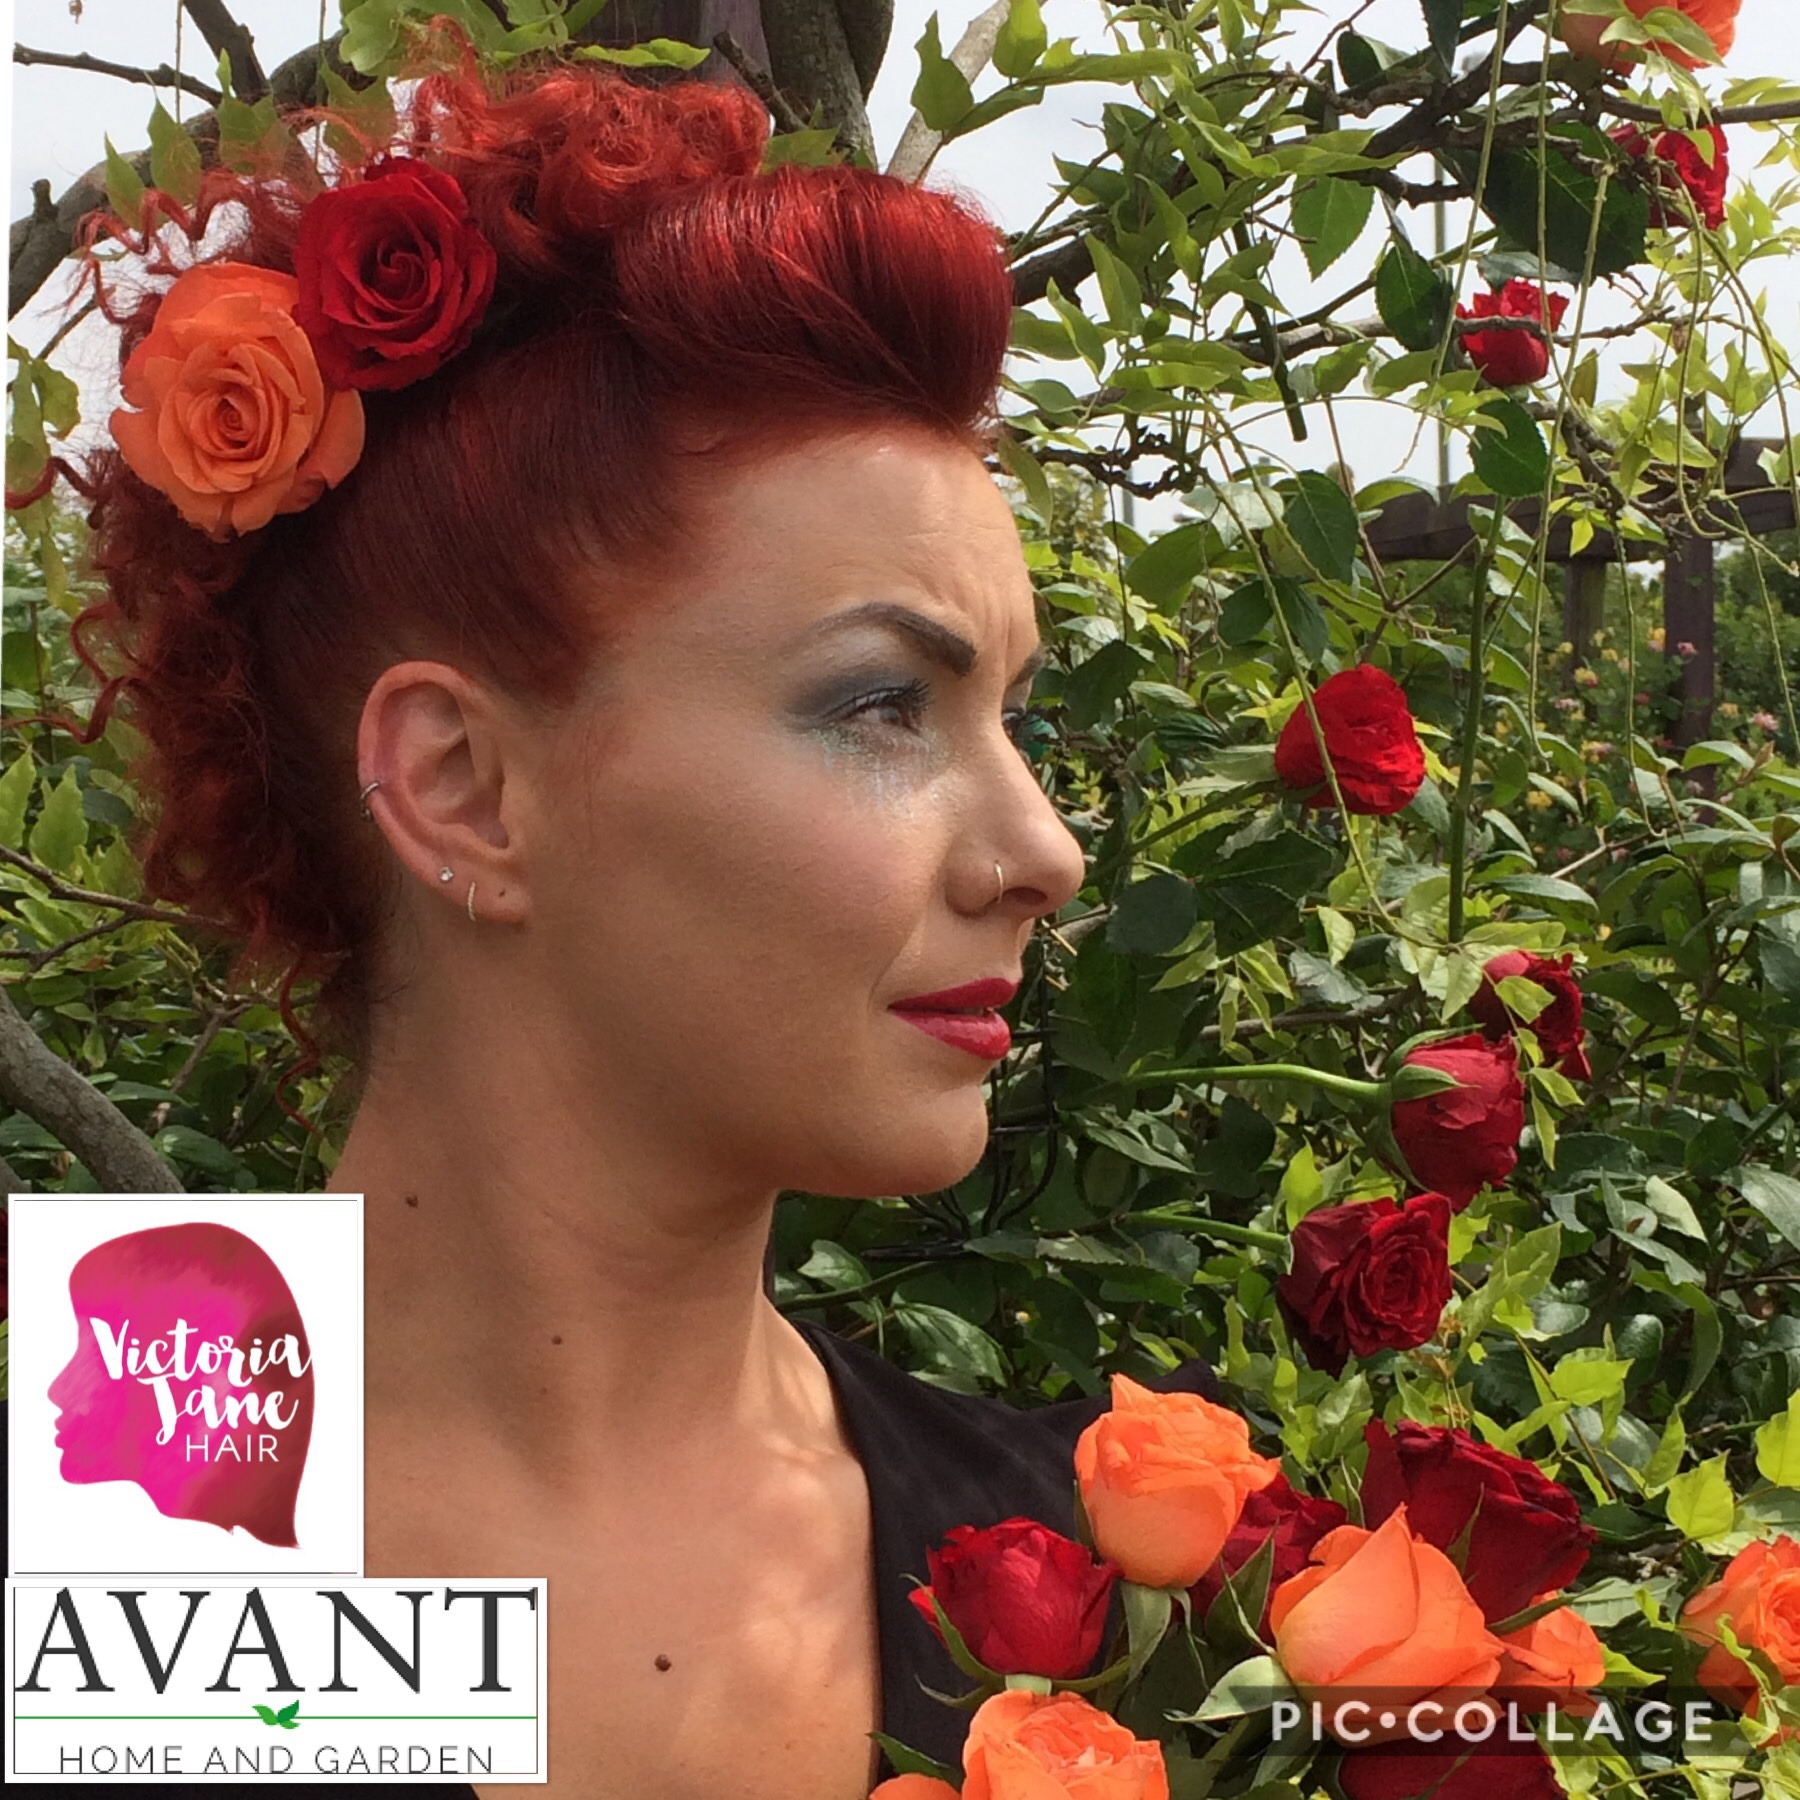 Style your garden – and your hair